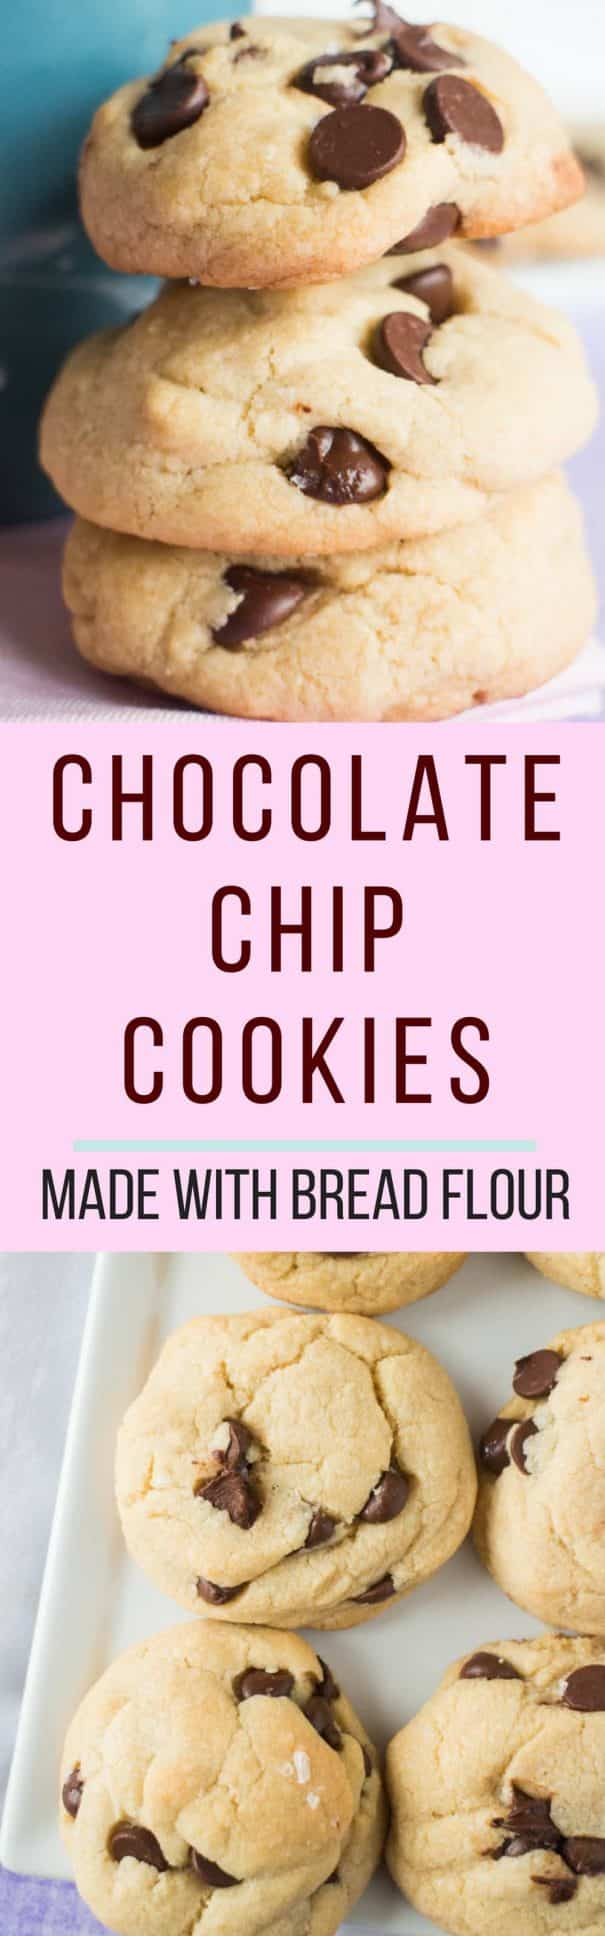 Chocolate Chip Cookies Made With Bread Flour